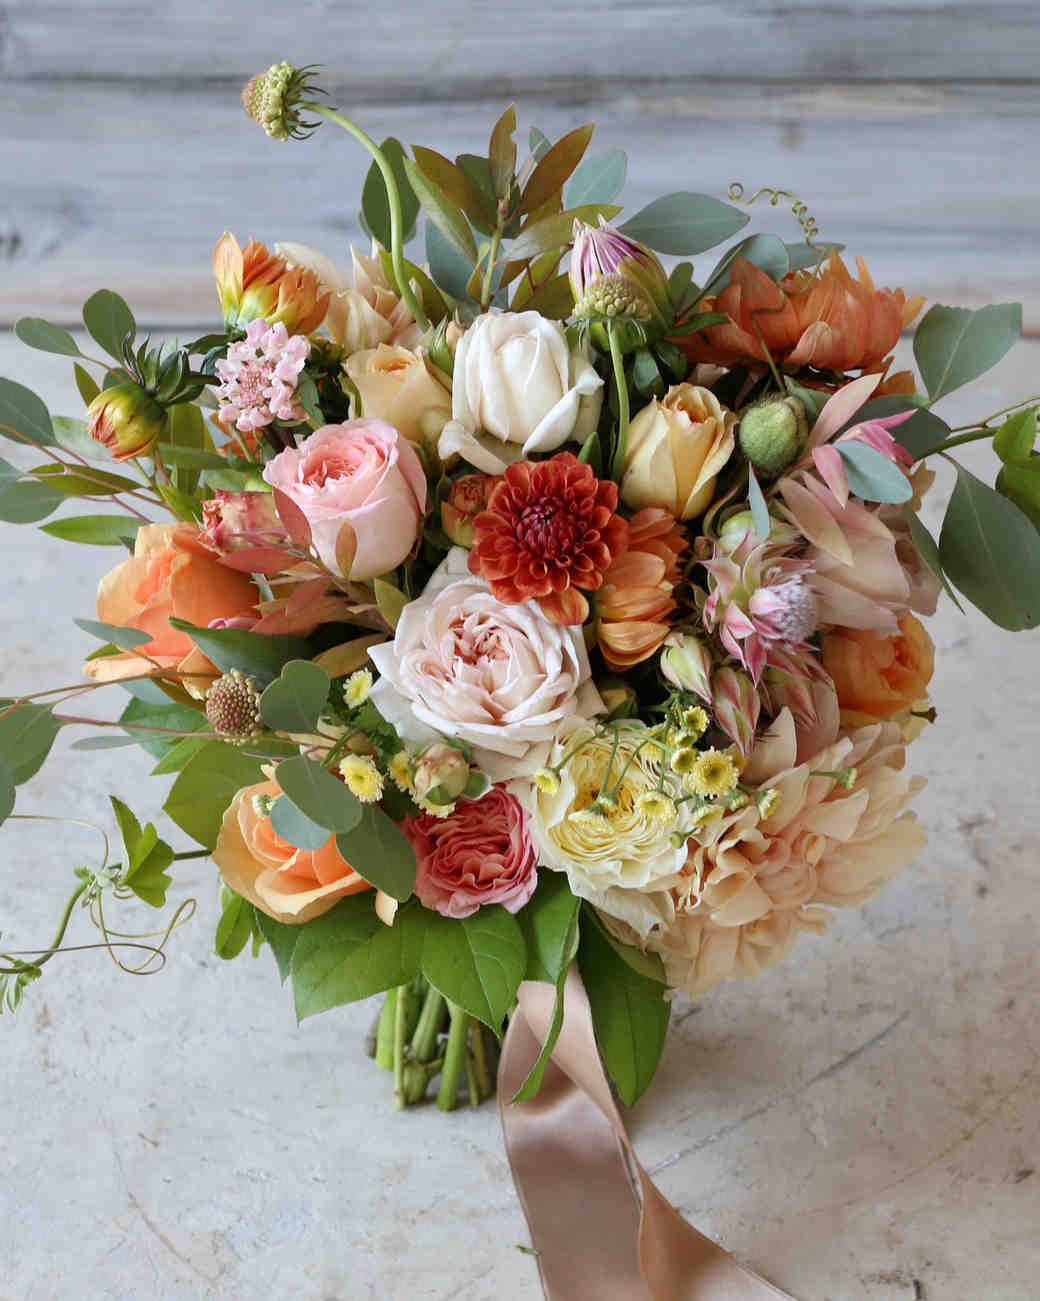 11 In Season Flowers That Are Perfect for a Fall Wedding